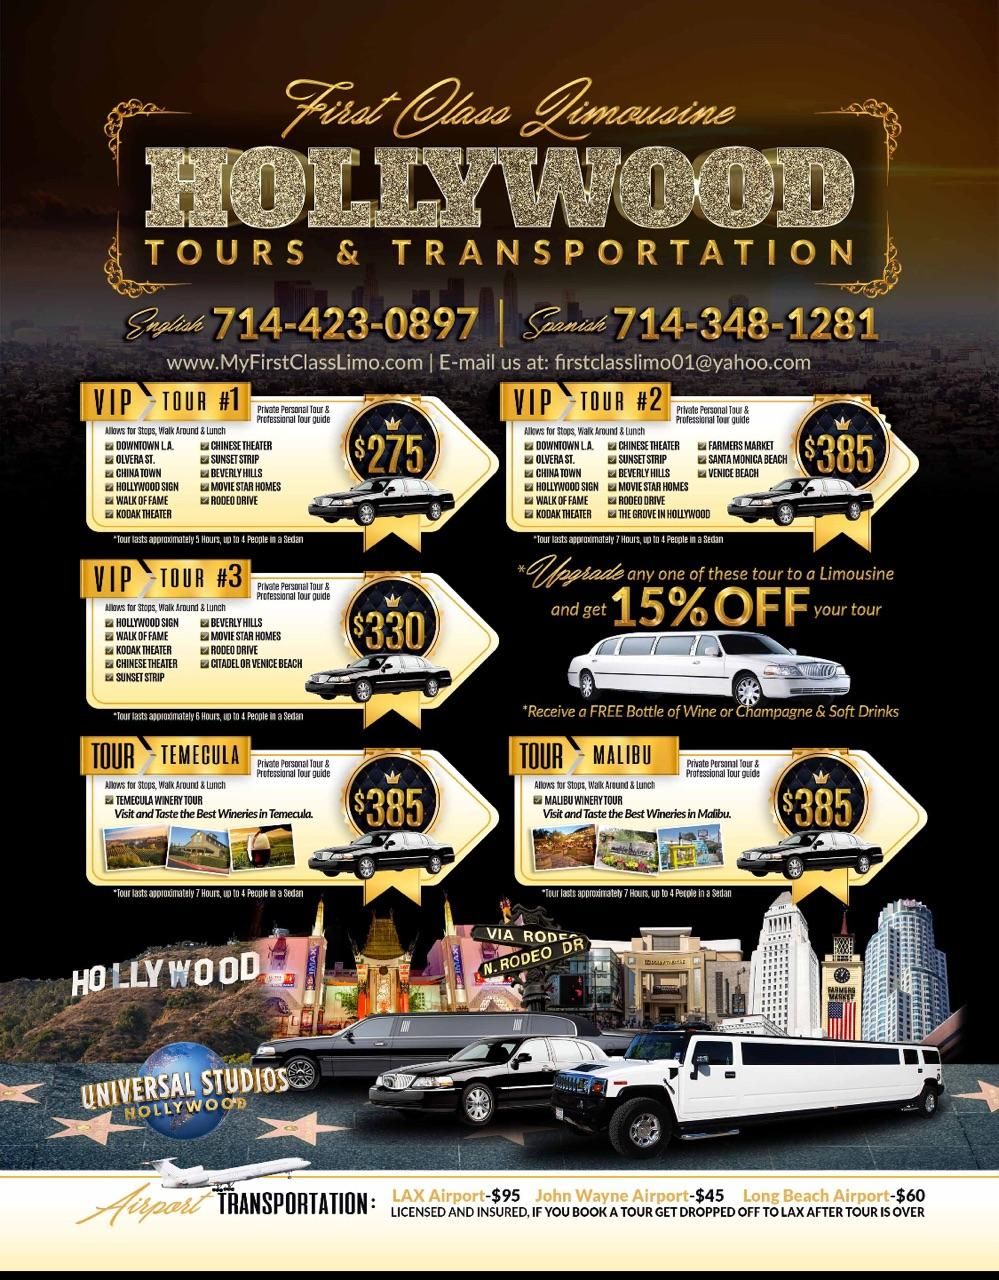 http://www.firstclasslimotours.com/take-a-tour-limousine-party-bus-anaheim-orange-county/